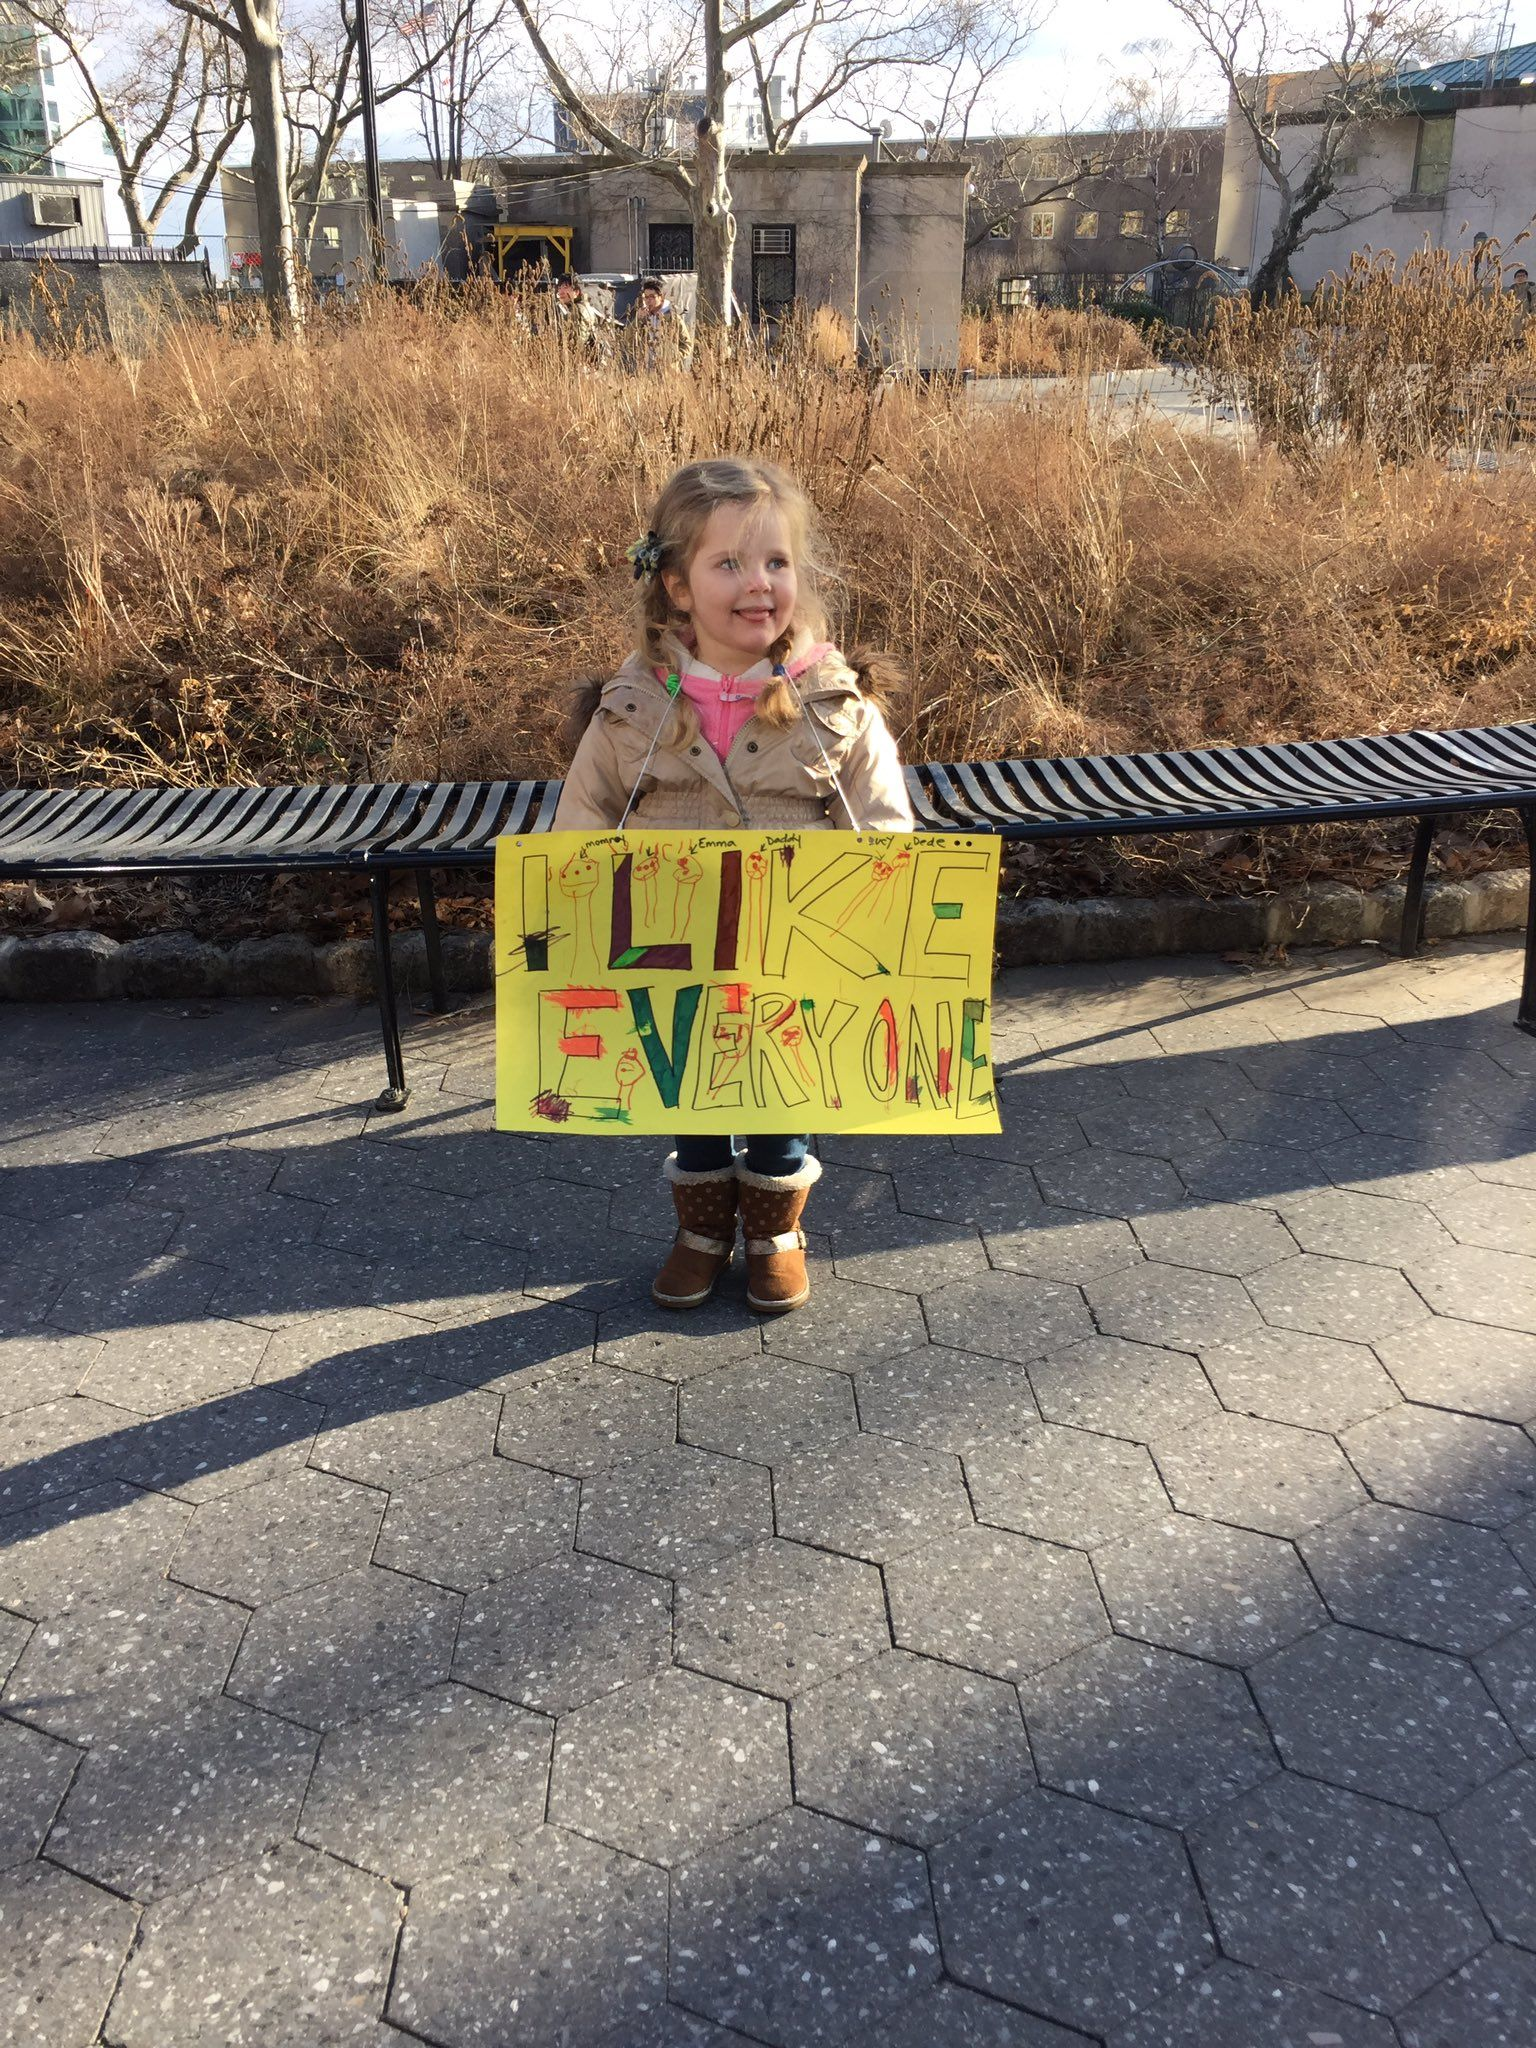 Jia Tolentino on   Pinterest   Battery park  Politics and Thoughts Jia Tolentino on Twitter   The best protestor in Battery Park  https   t co RgA68QvOG2